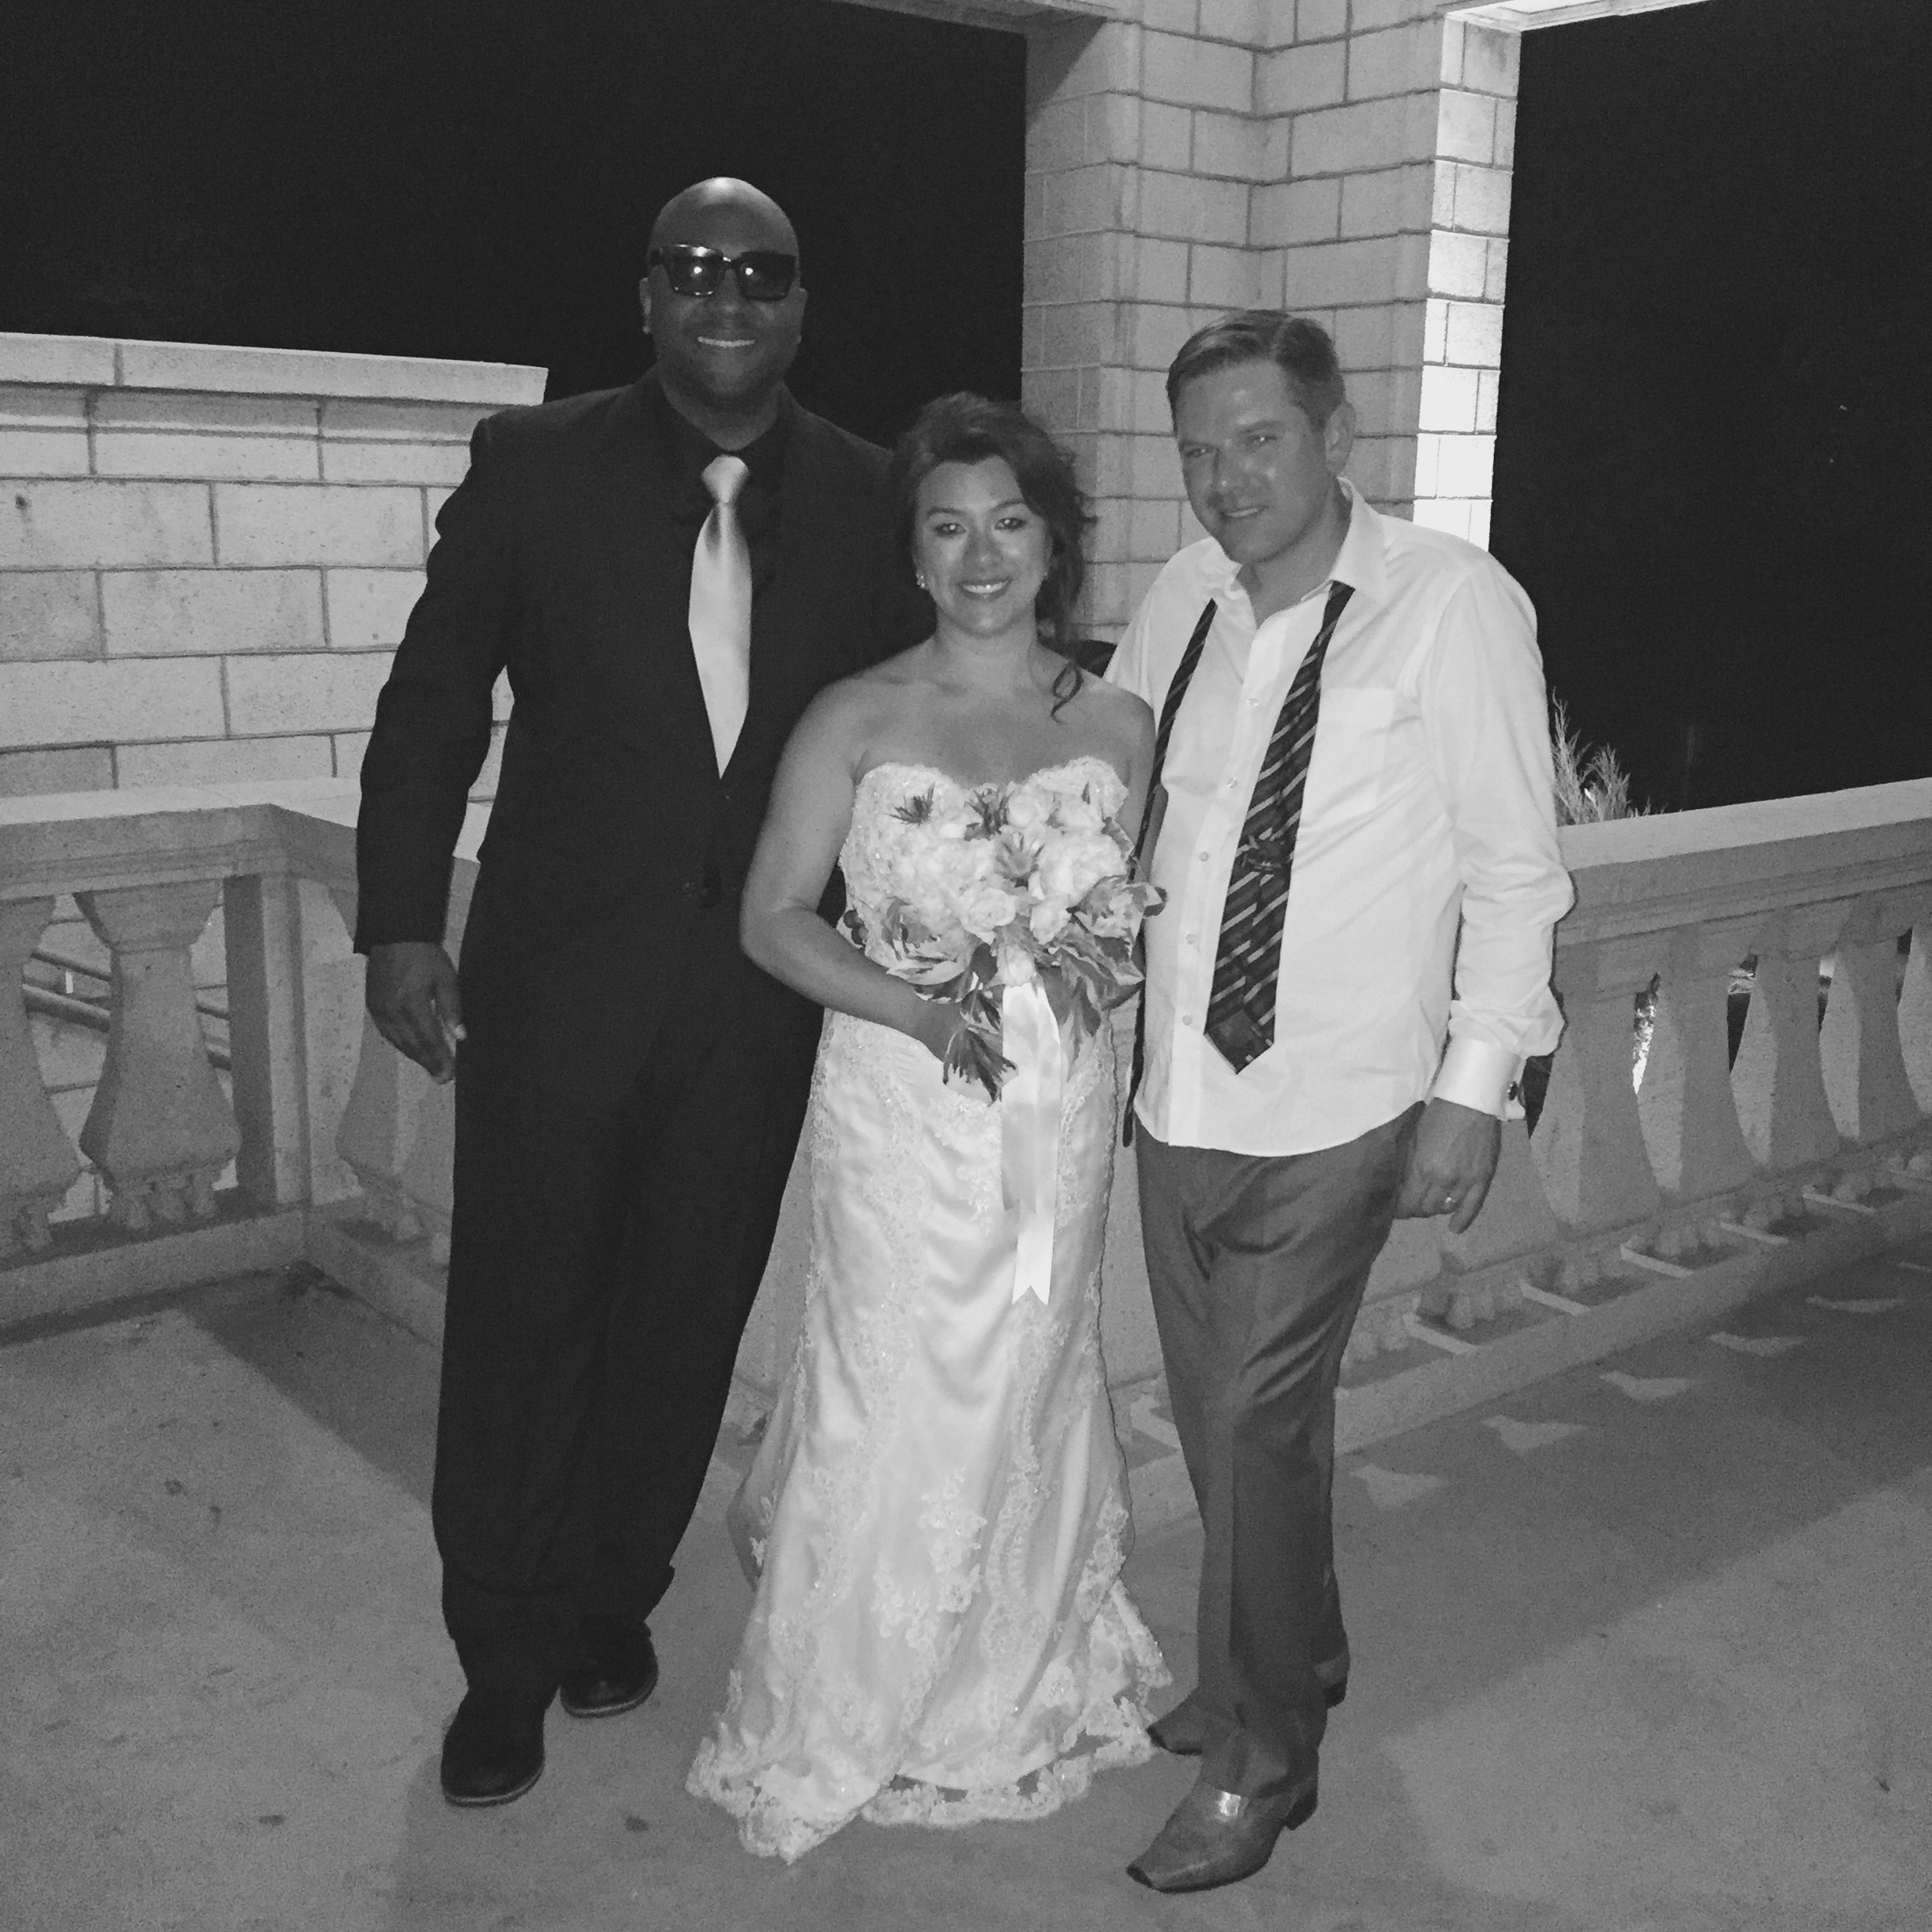 DJ D JONES CHICAGO BEST WEDDING BRIDE GROOM 015.jpg